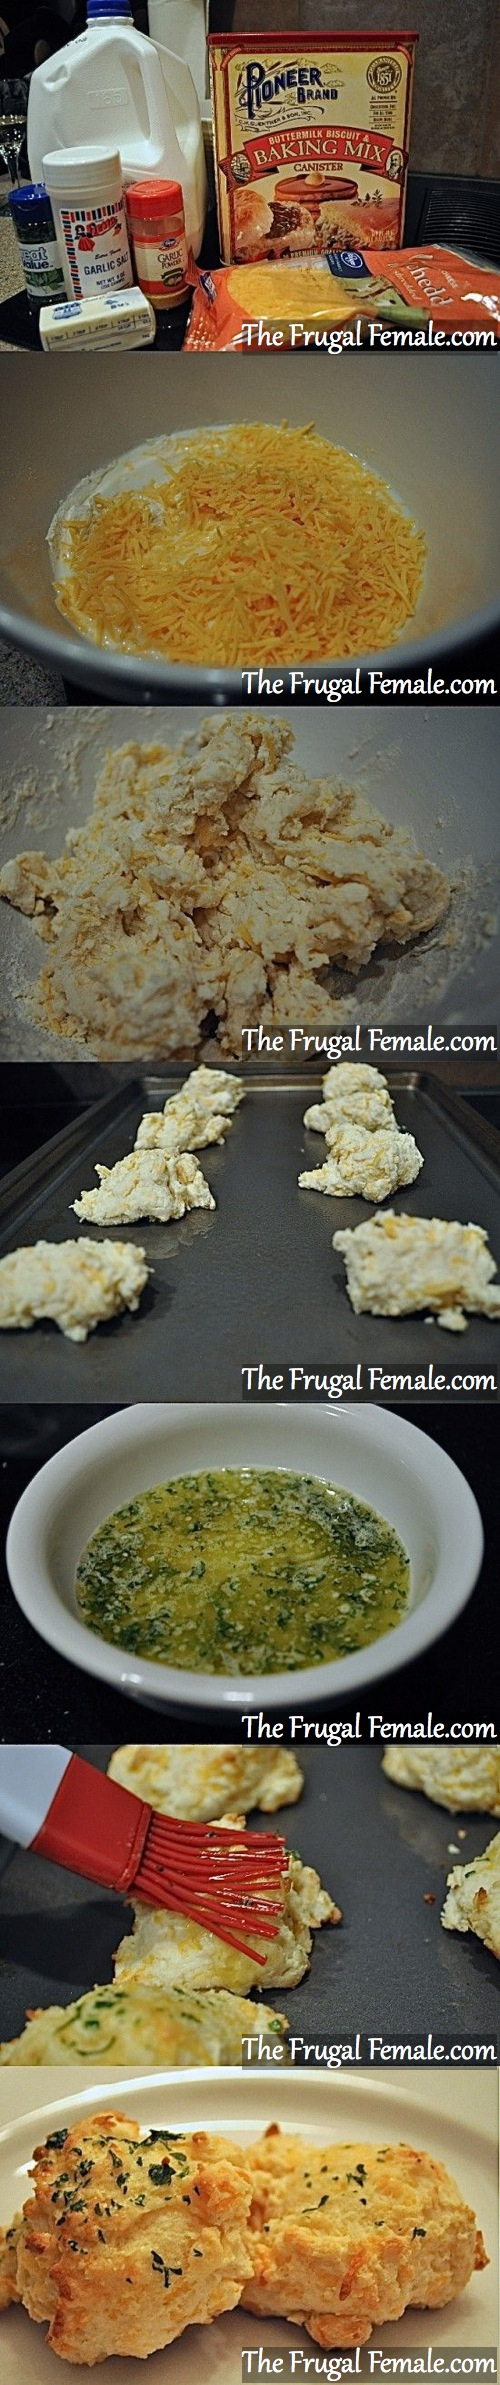 Easy Cheesy Biscuits - The Frugal Female